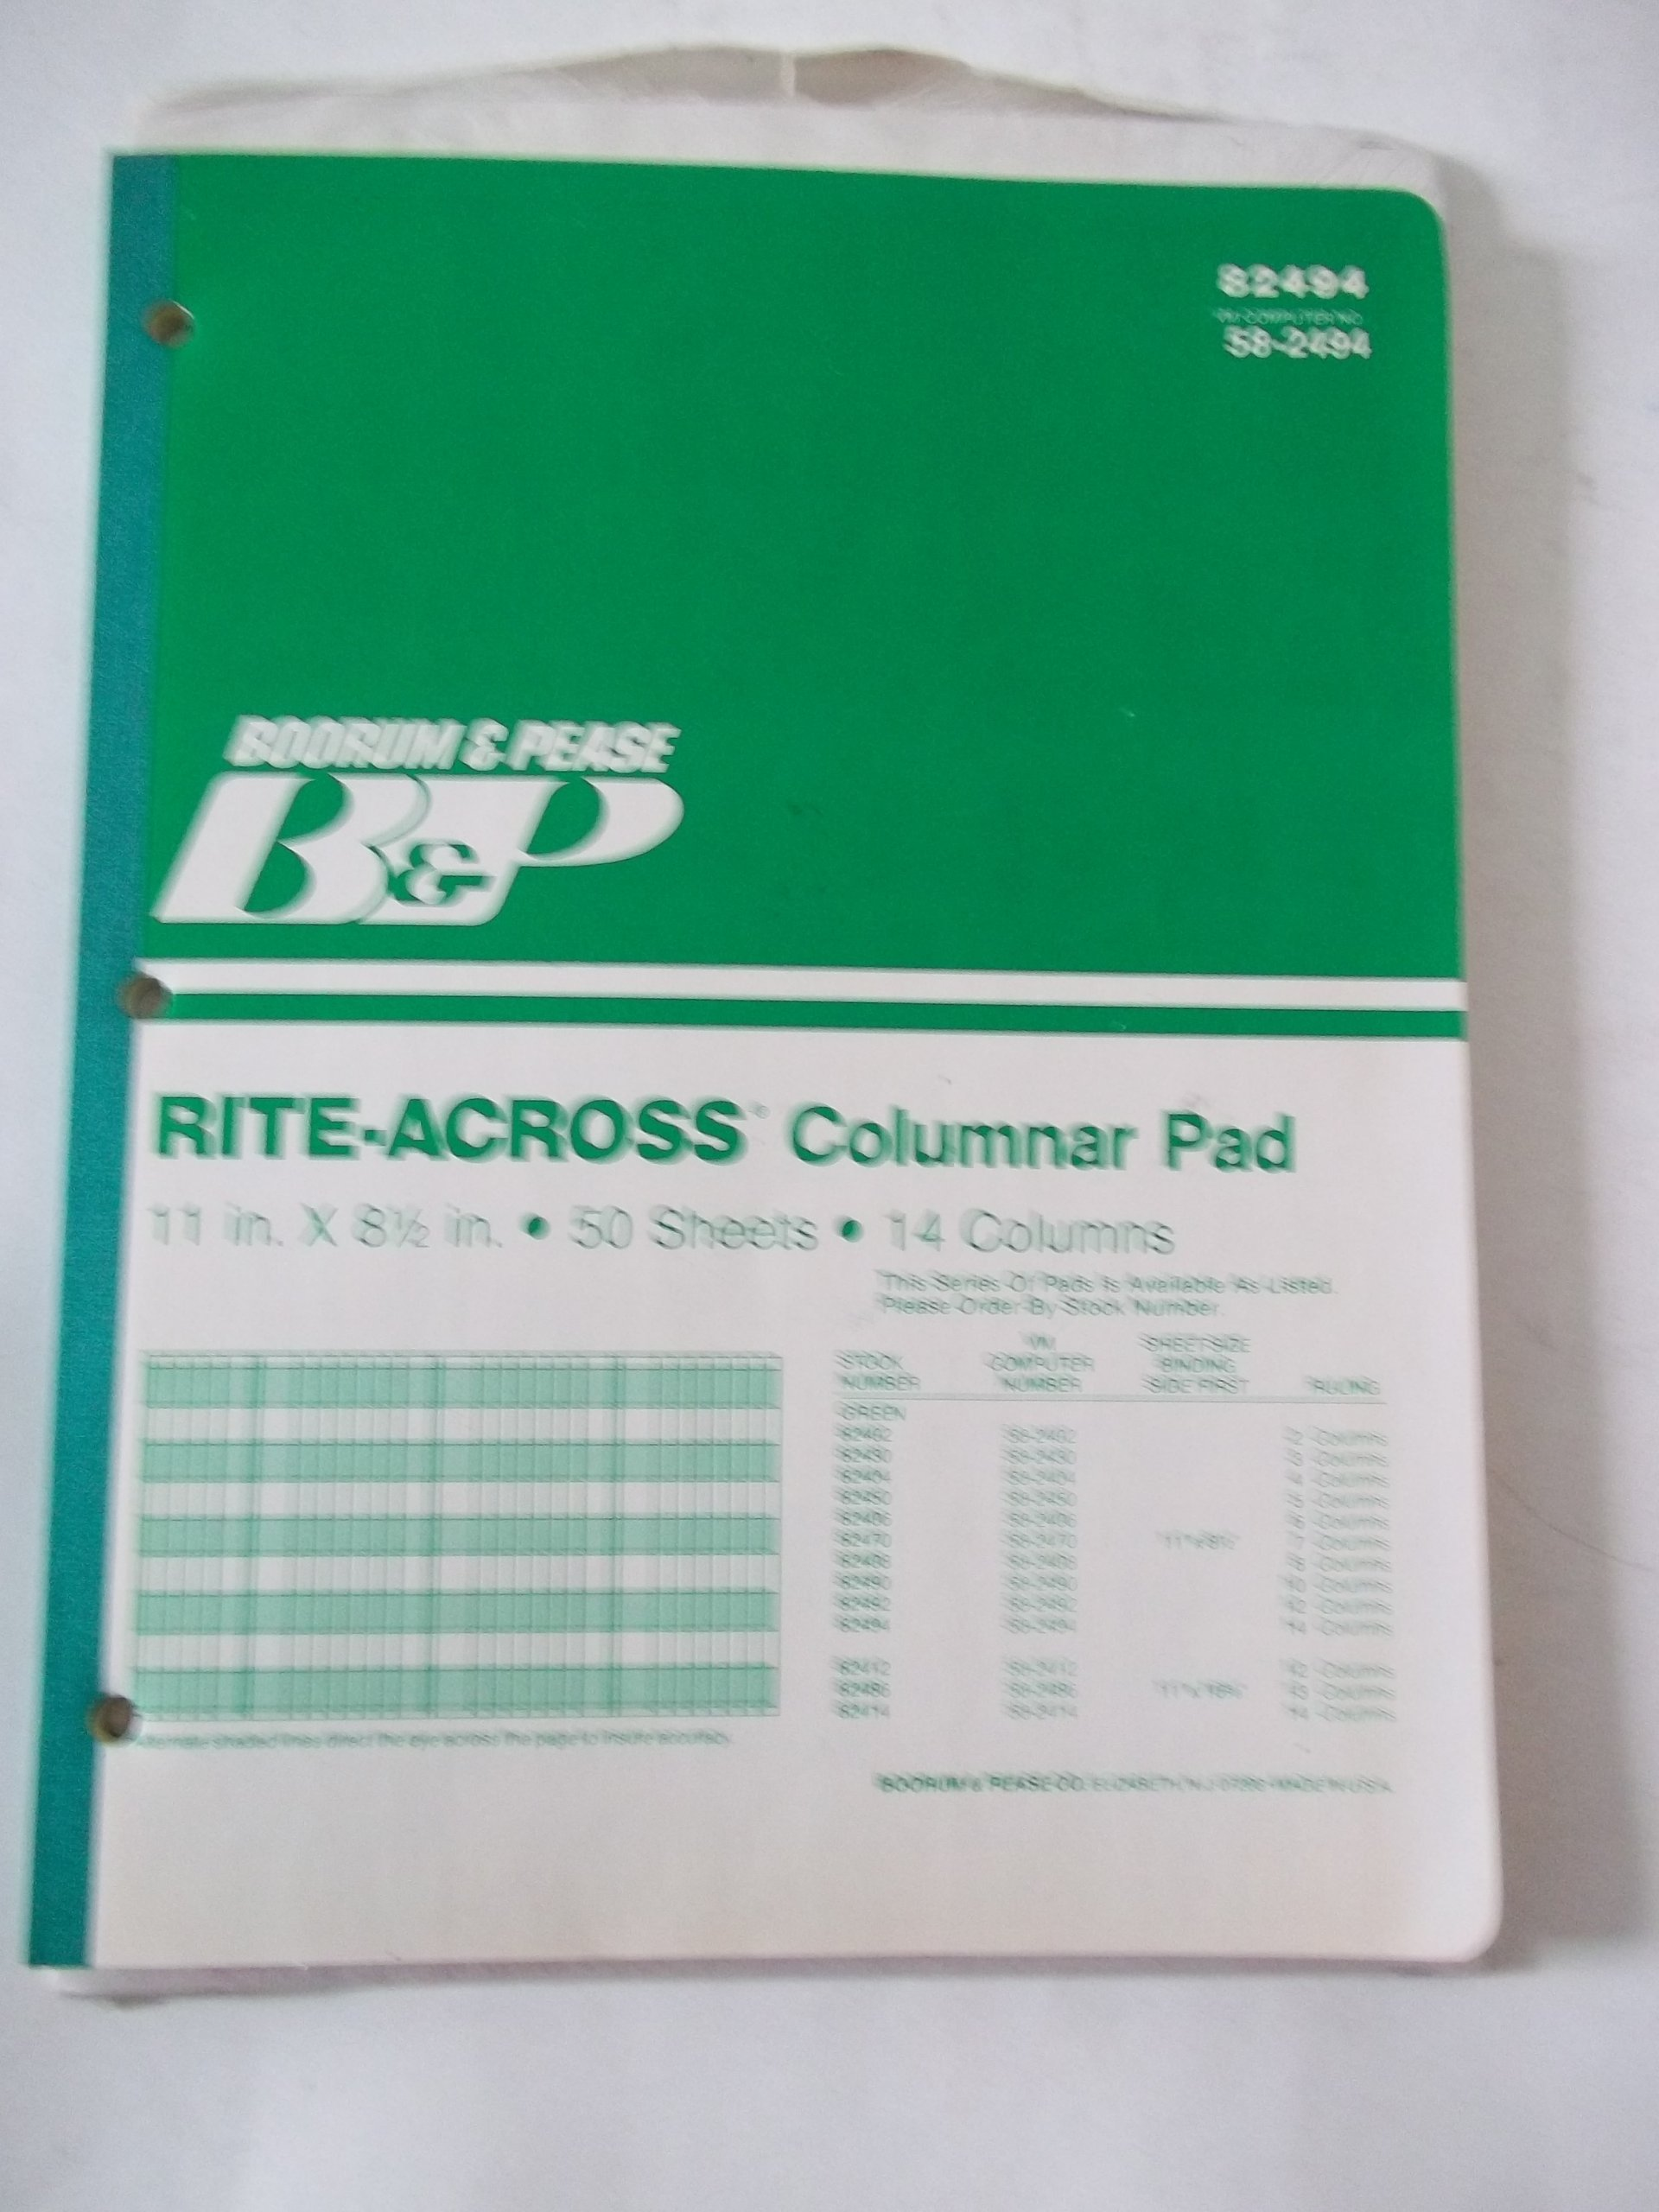 Boorum Pease 82494 rite-across 14 Columns Columnar Pad 50 Sheets 11'' x 8 1/2'' Alternating Green White Lines VM Computer No. 64-6821